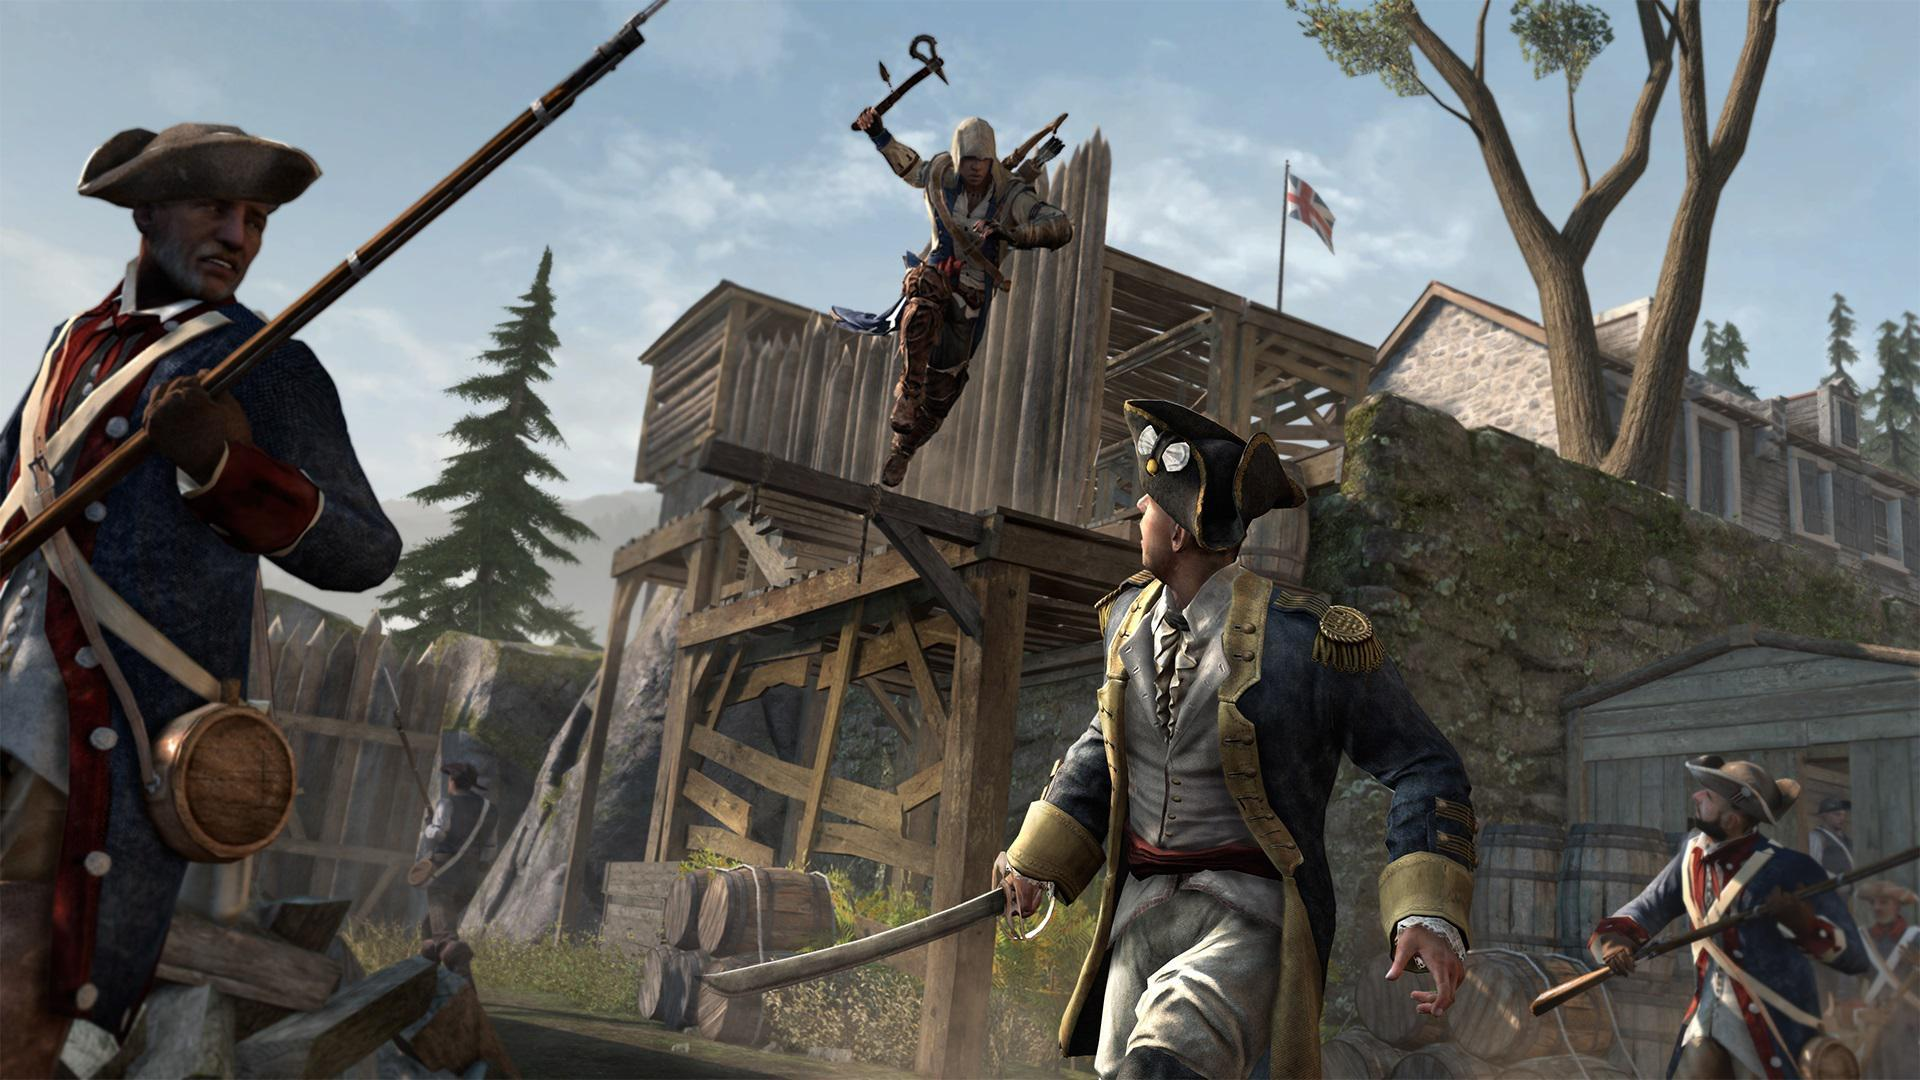 Assassin's Creed III in Assassin's Creed Games, Ranked From Worst to Best - 1